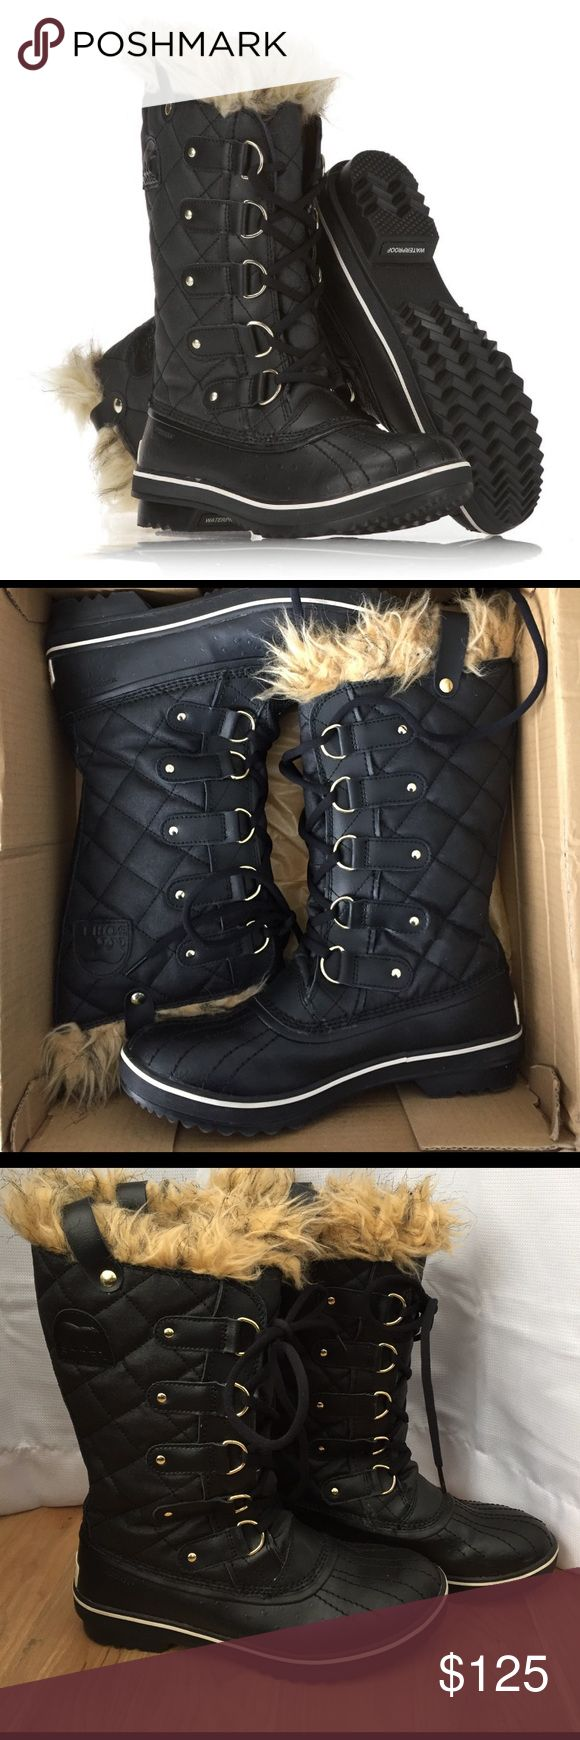 NWT Sorel Torino Boots Brand new waterproof black boots with gold details. Fleece and fur lining. Amazing tread for snow and ice. These are beautiful boots. Come with box. Sorel Shoes Winter & Rain Boots